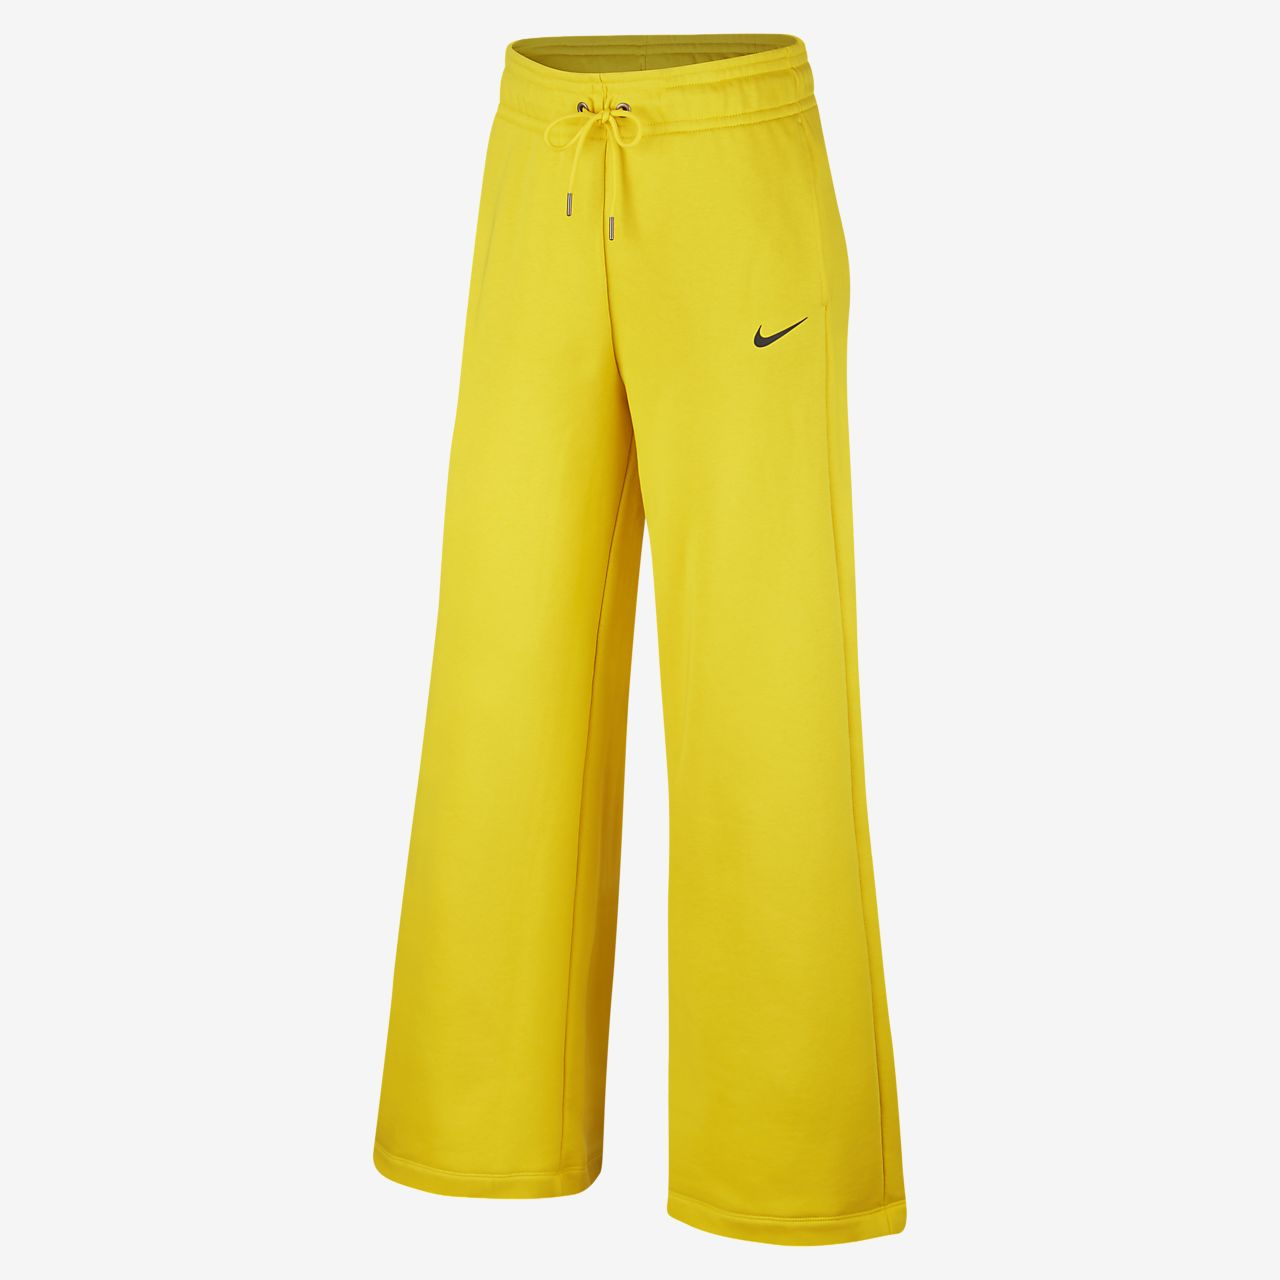 Nike Sportswear Women's Wide-Leg Trousers